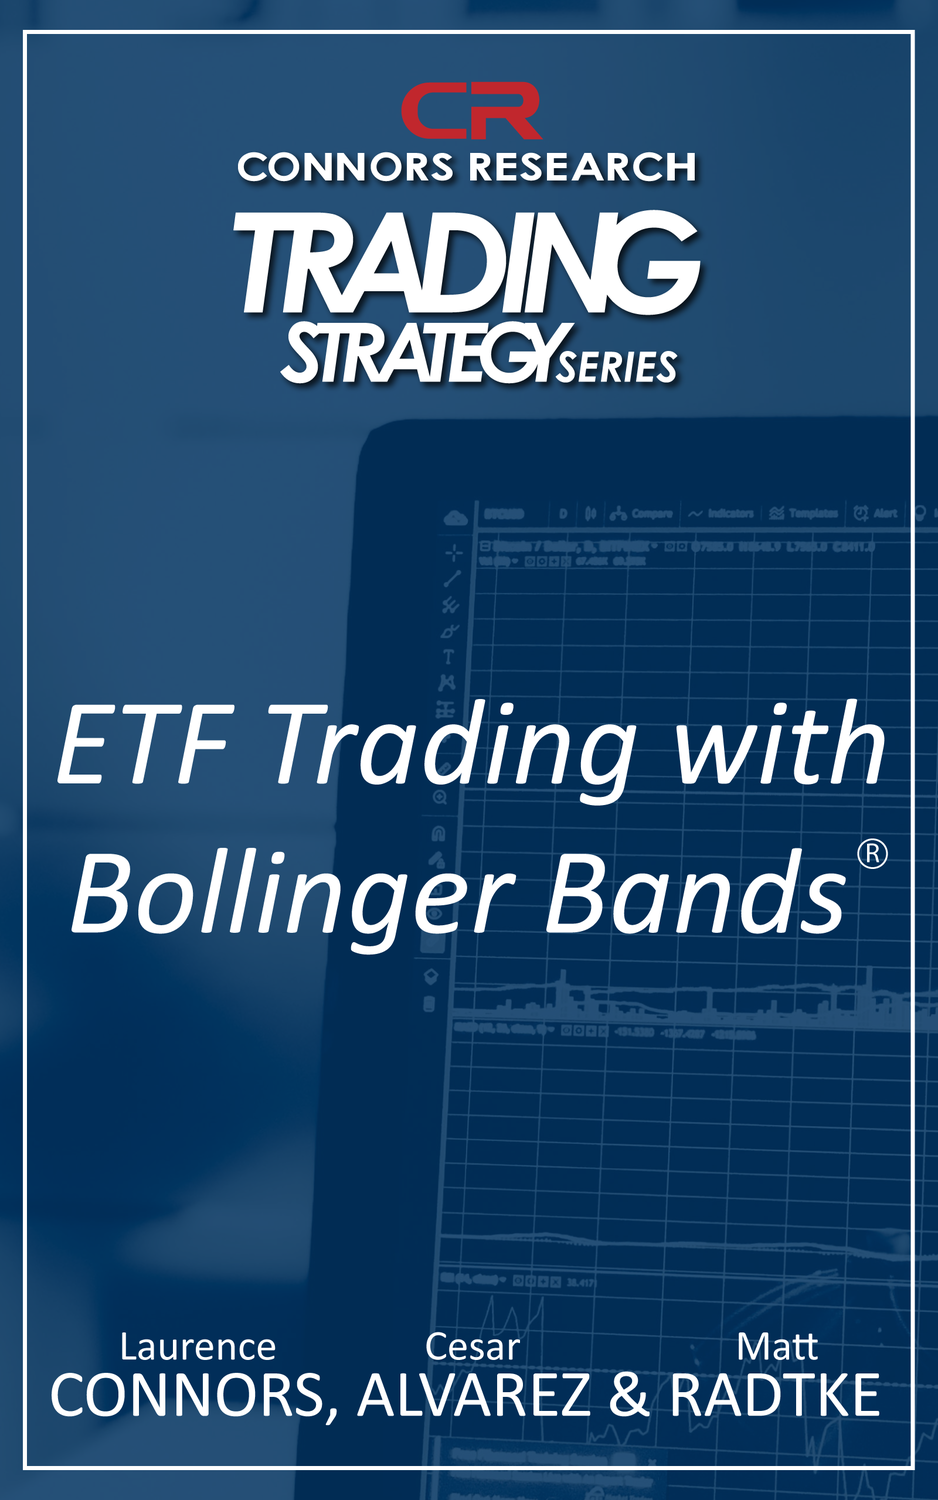 Connors Research Trading Strategy Series: ETF Trading with Bollinger Bands